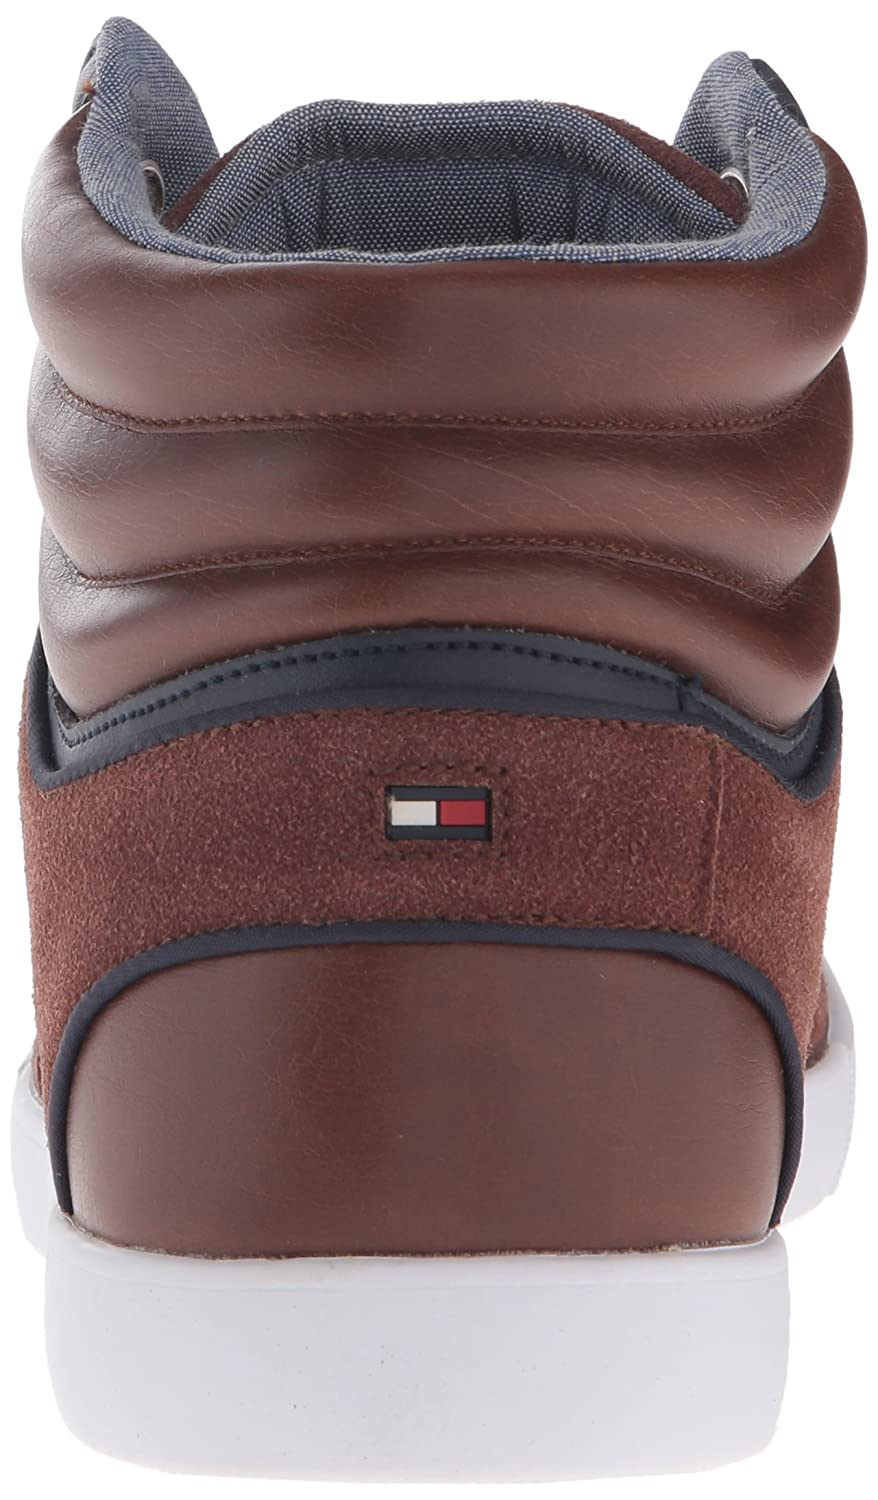 Tommy Hilfiger Men's Tappan Fashion Sneaker, Brown, 10. 5 M US: Buy Online  at Low Prices in India - Amazon.in